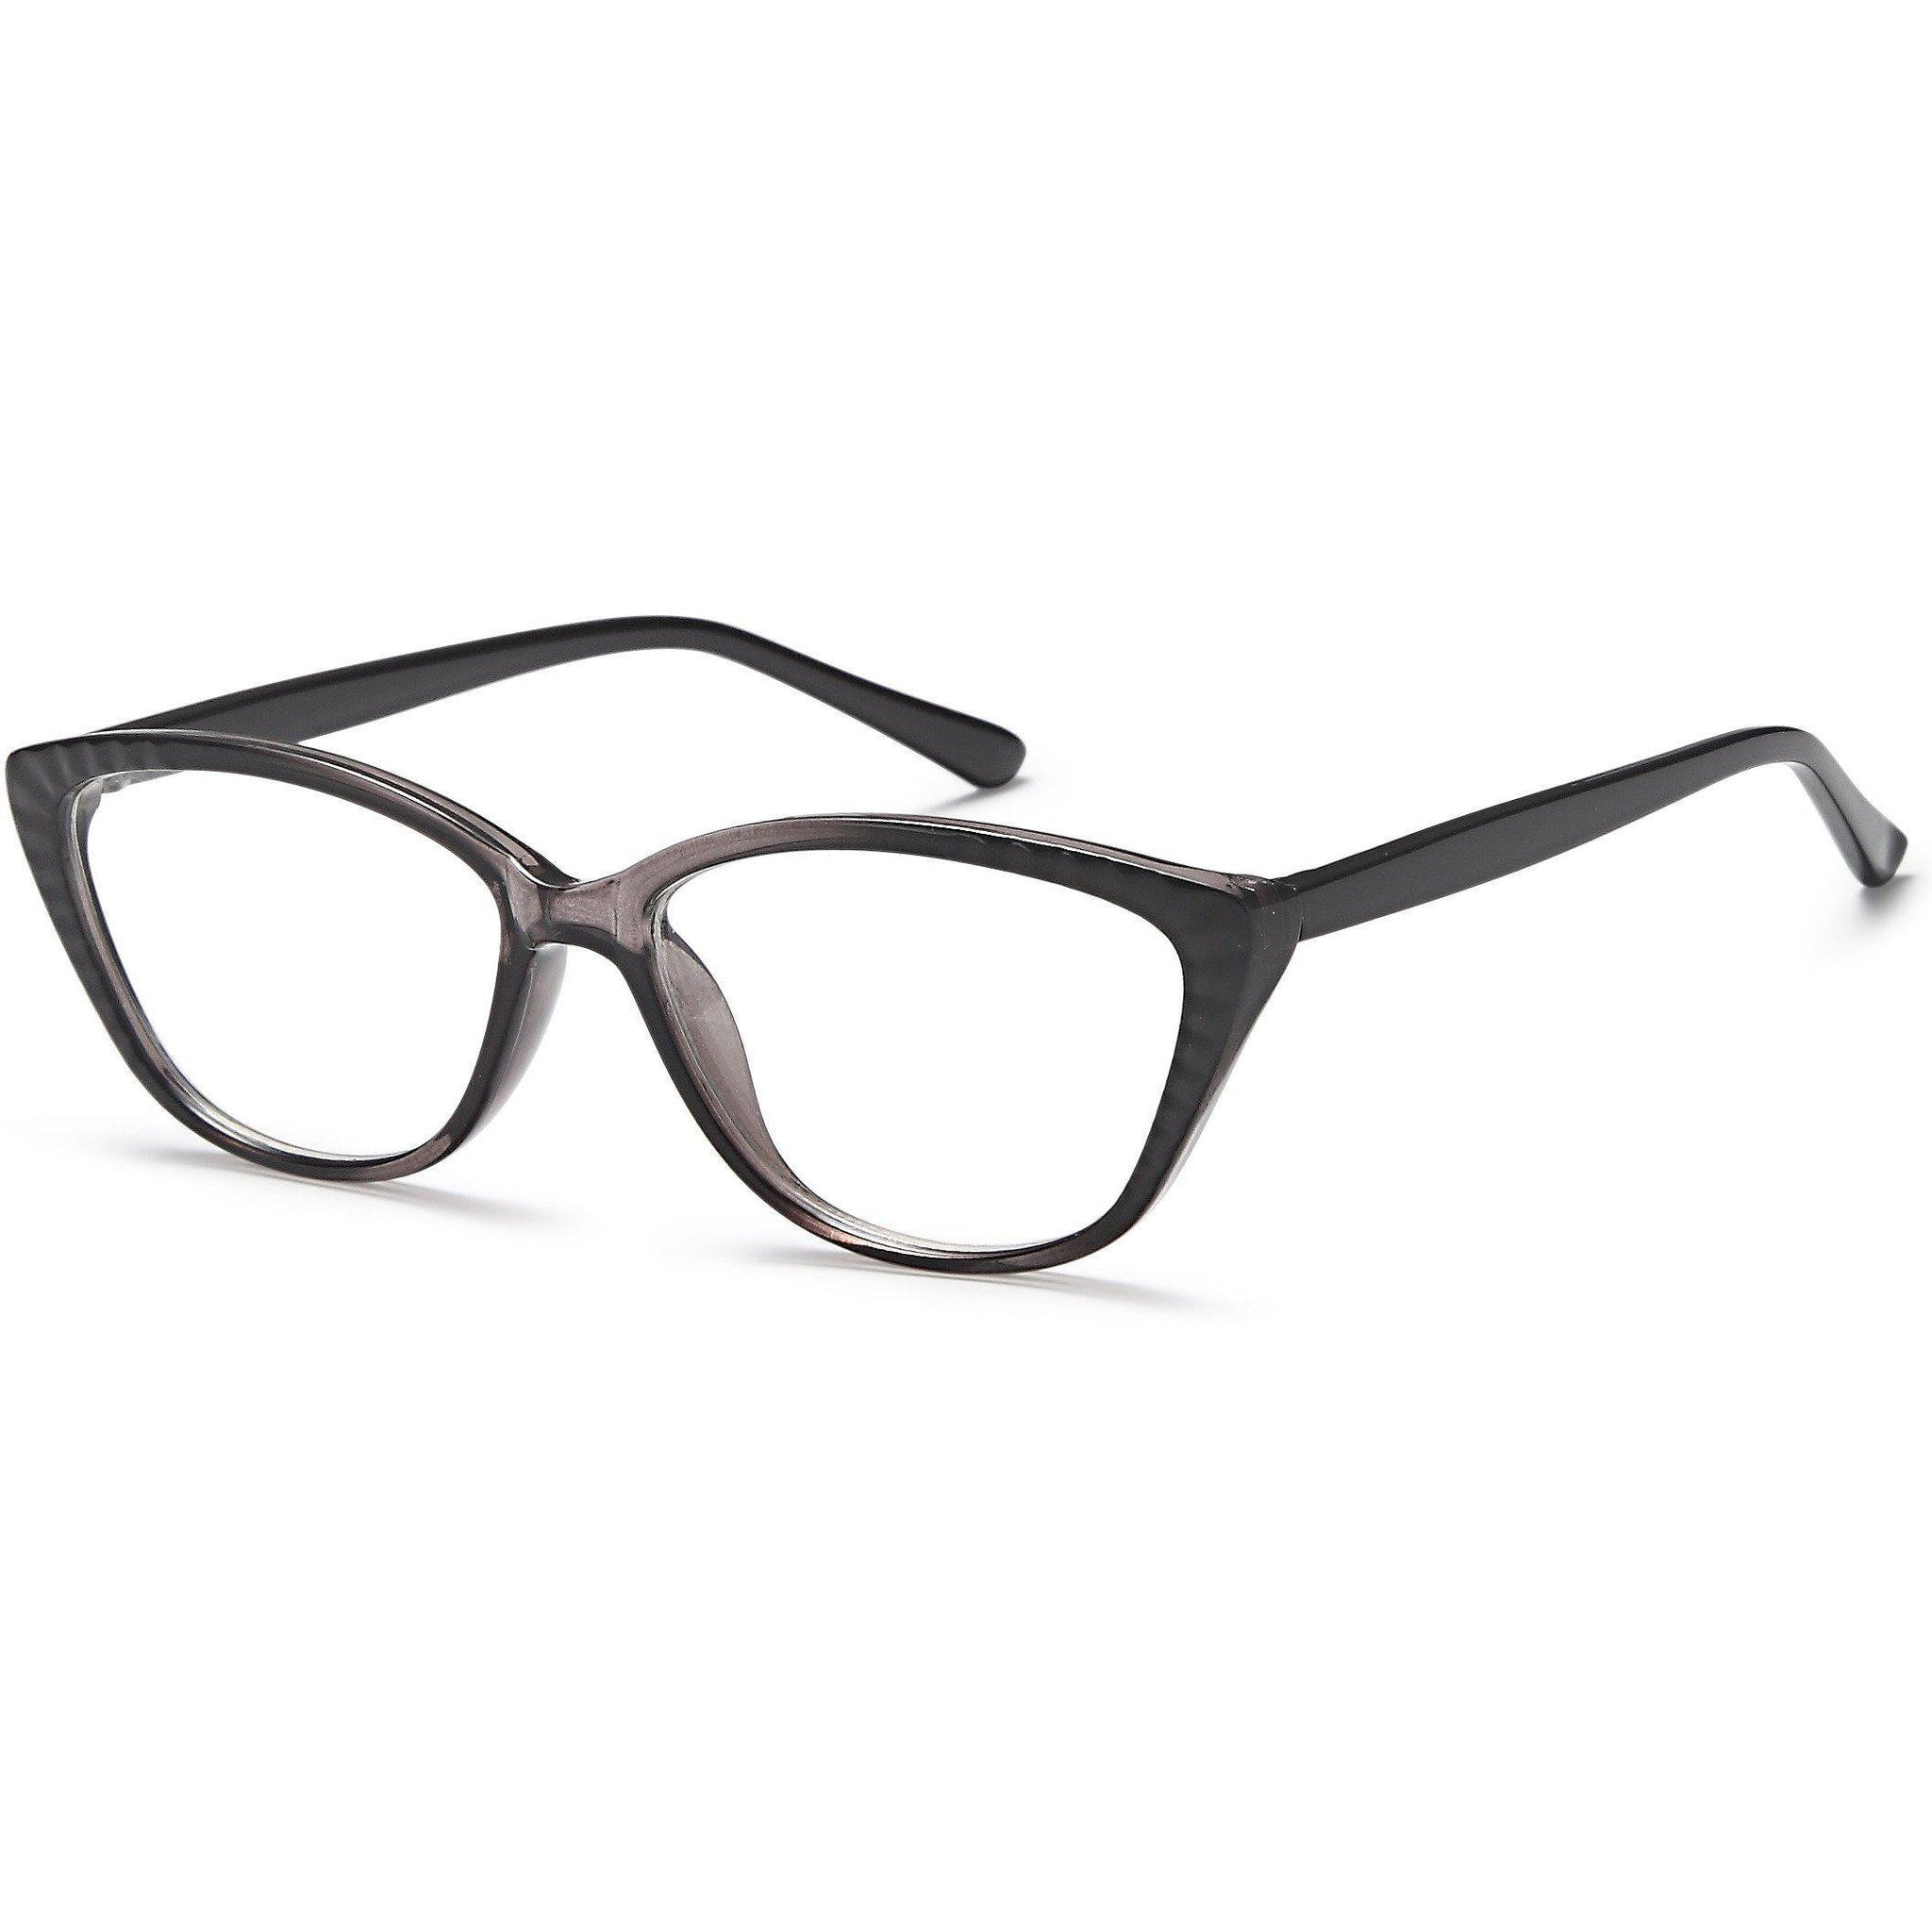 4U Prescription Glasses U 209 Optical Eyeglasses Frame - timetoshade